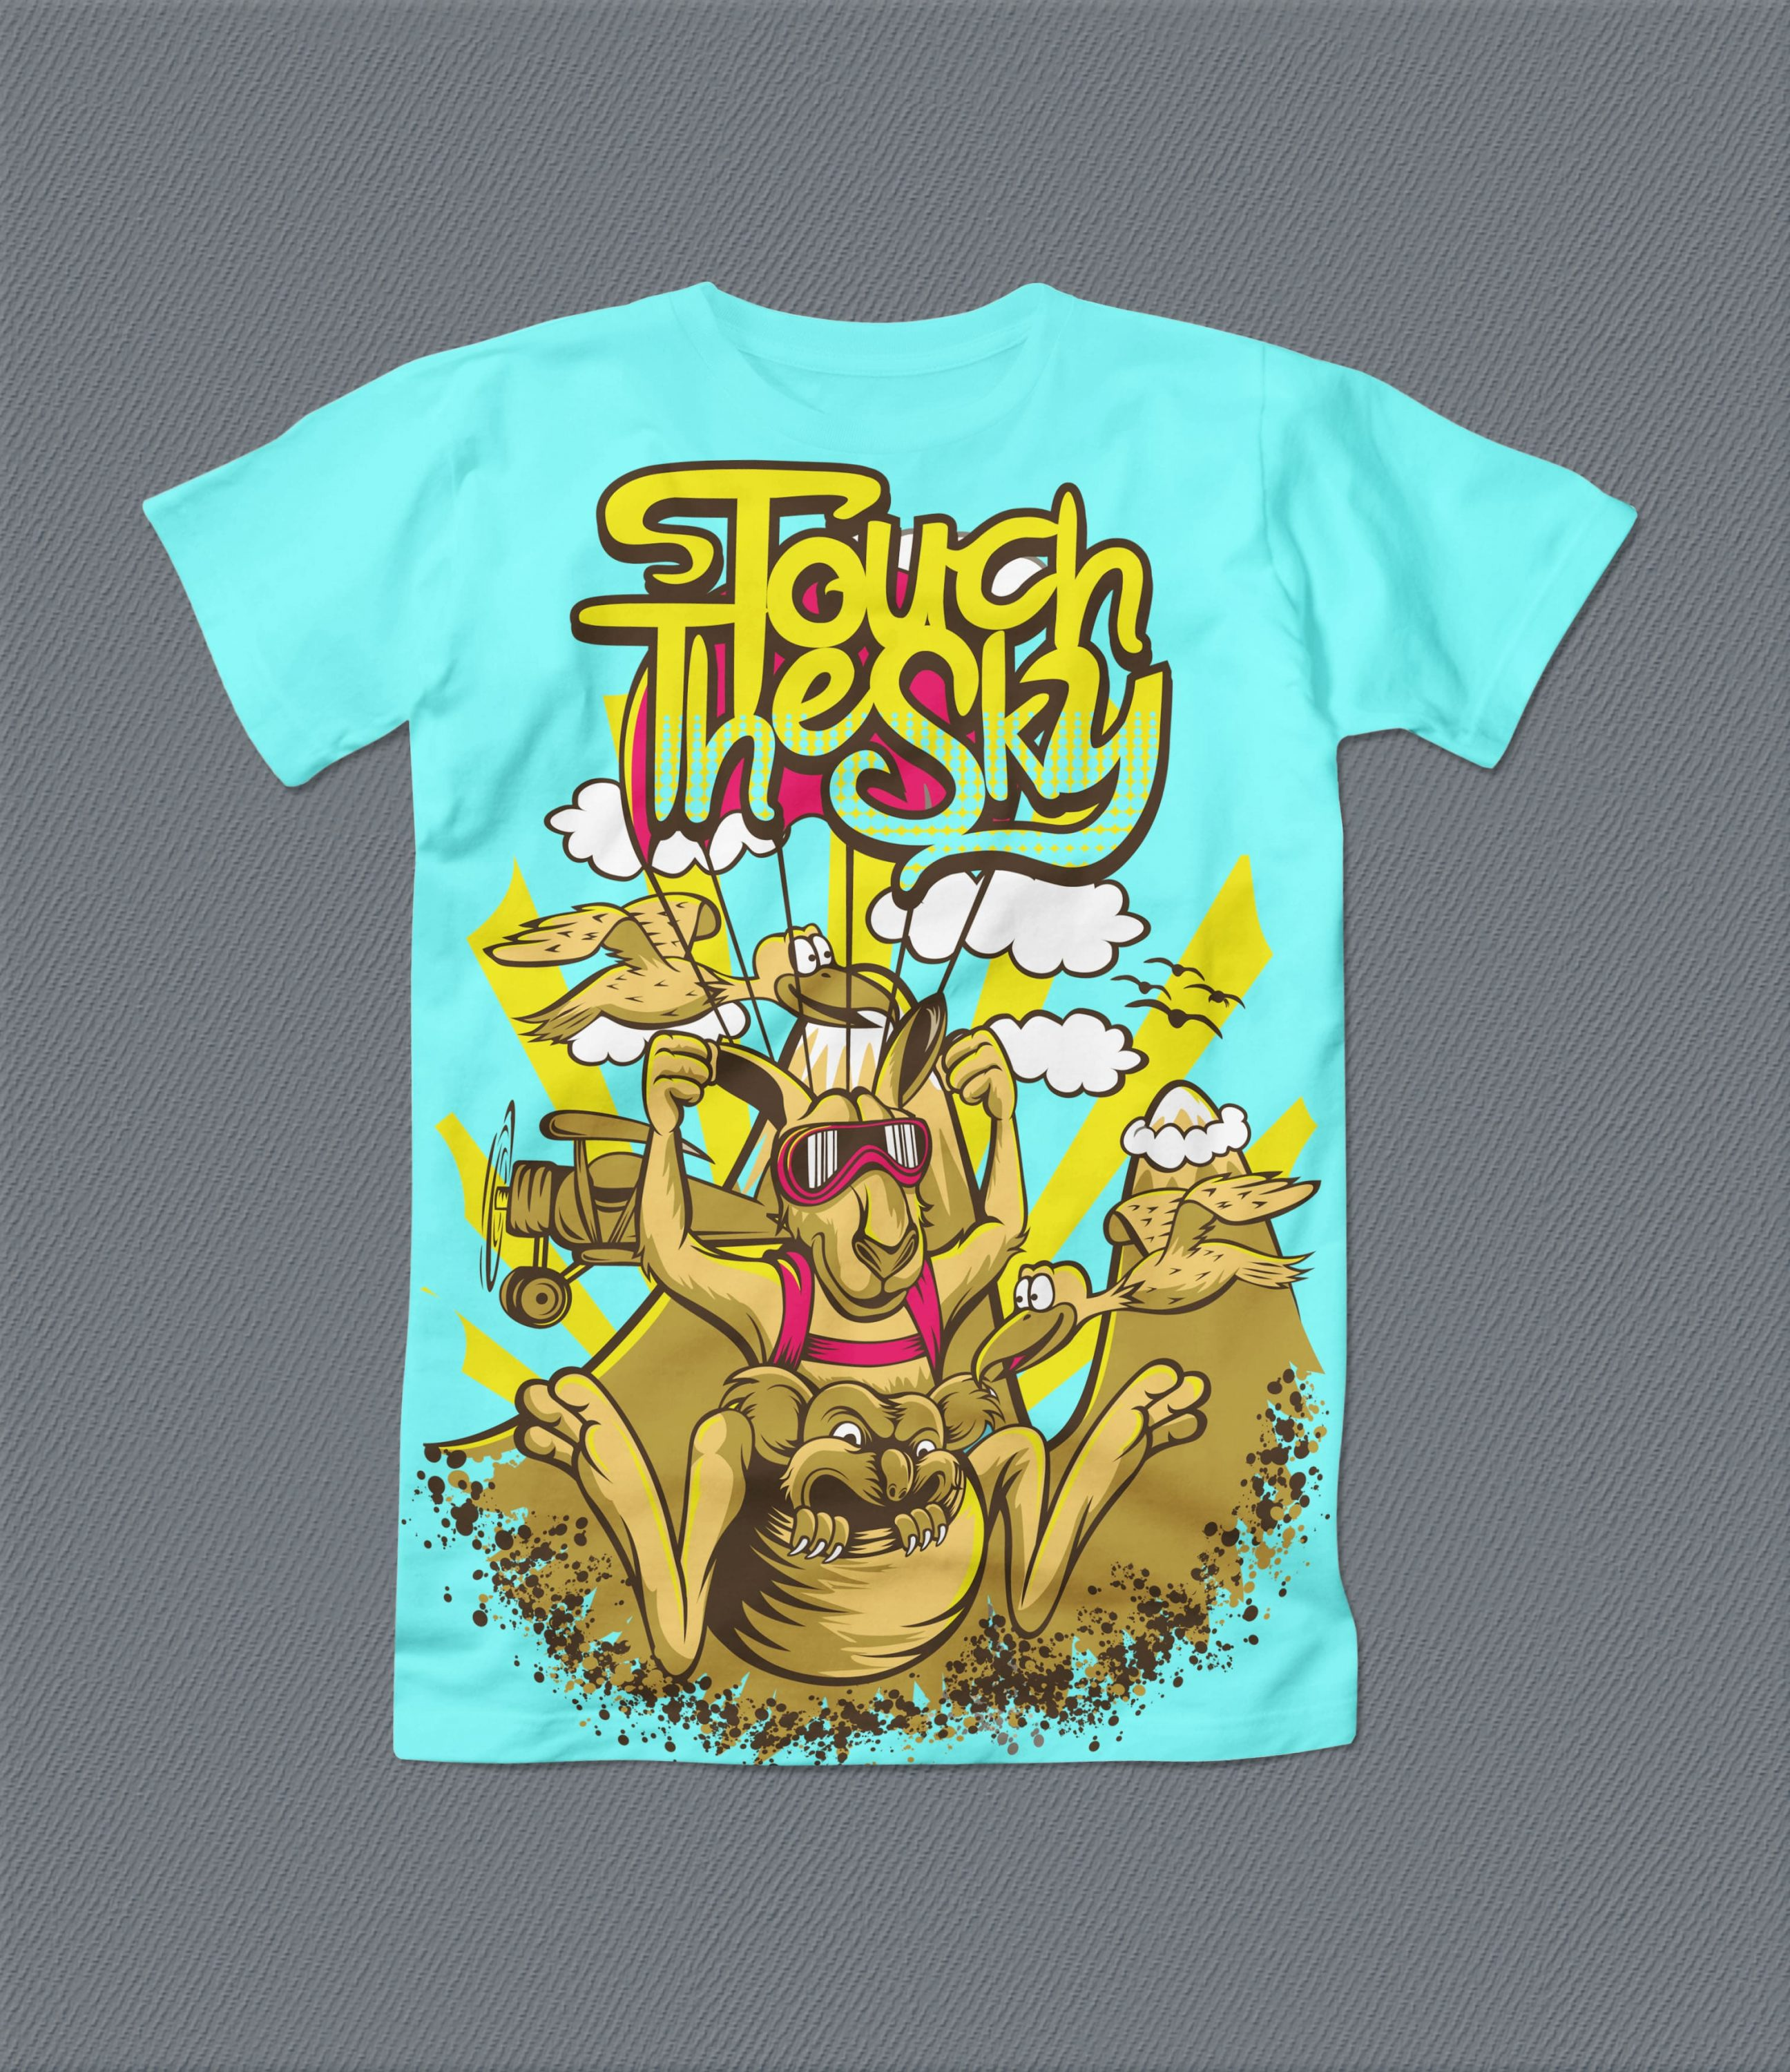 Bright blue t-shirt with funny kangaroo and colorful font.